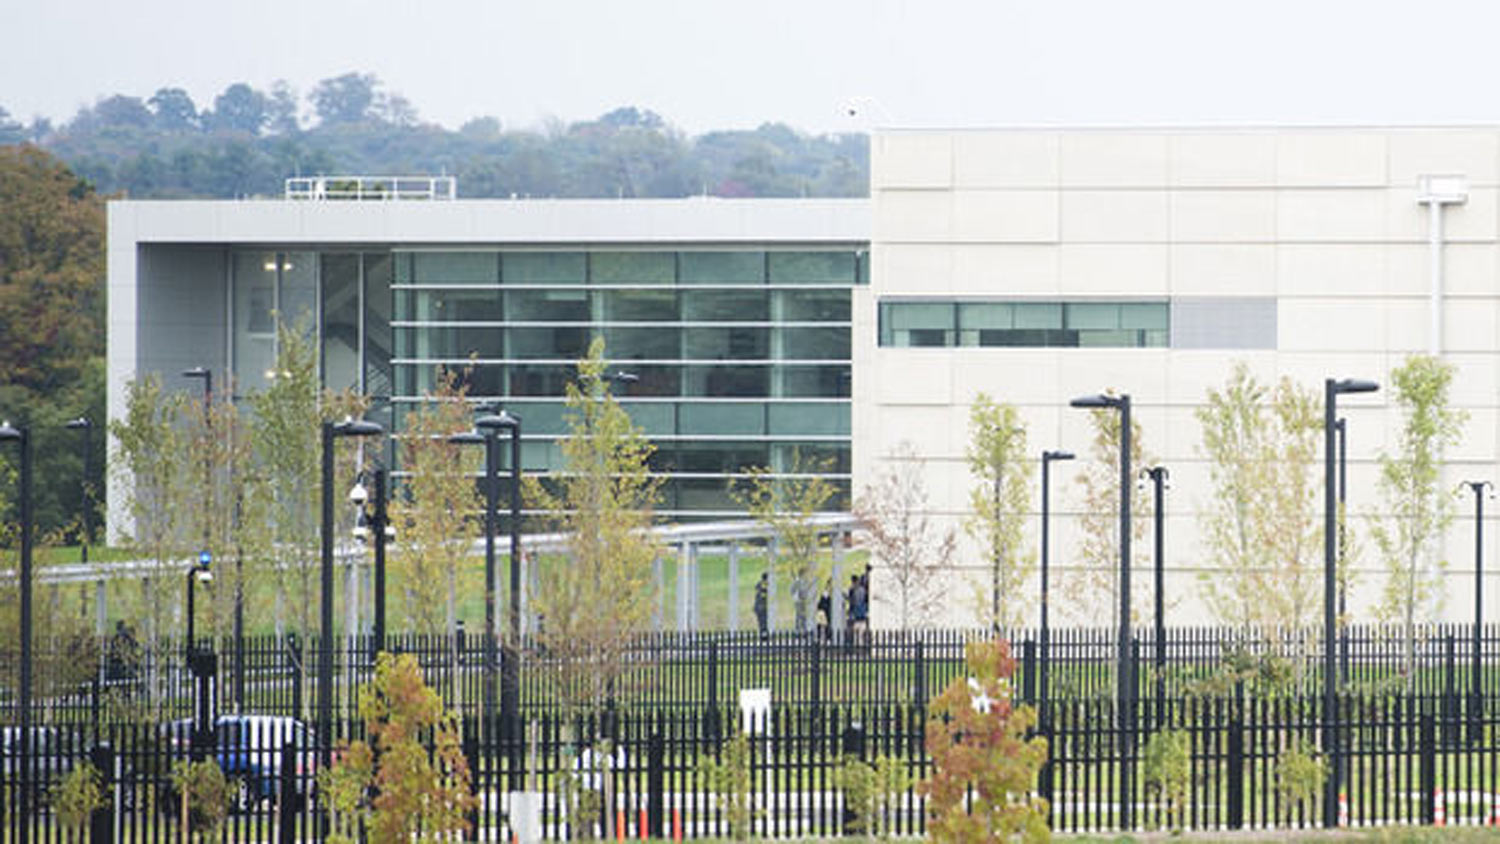 Social Security Data Center, Maryland